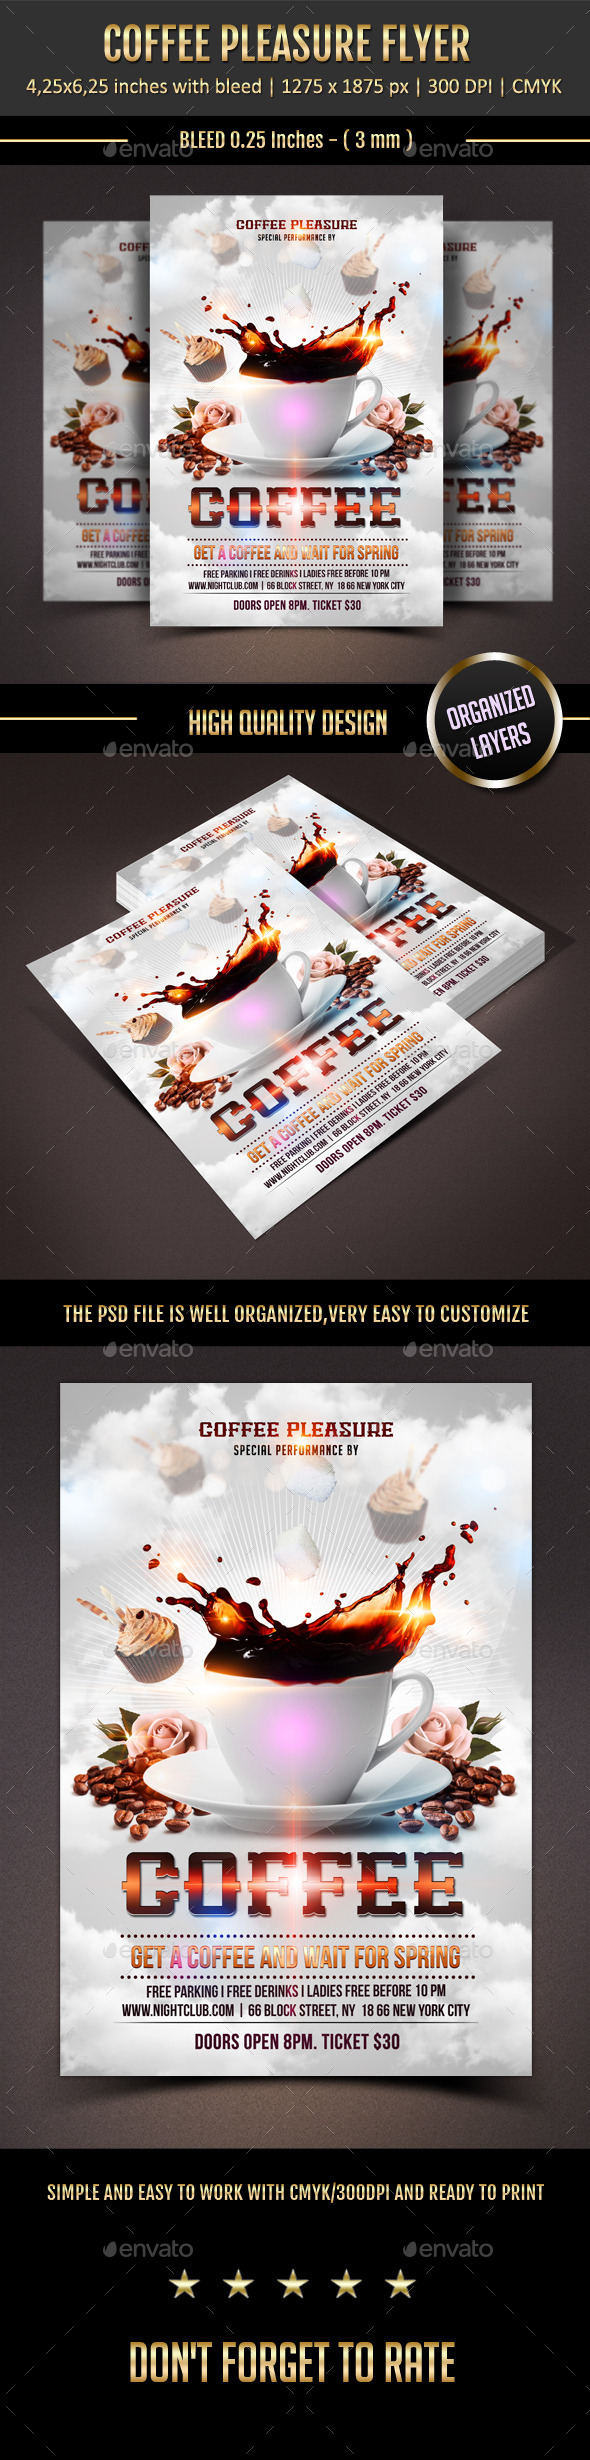 GraphicRiver Coffee Pleasure Flyer 11350466